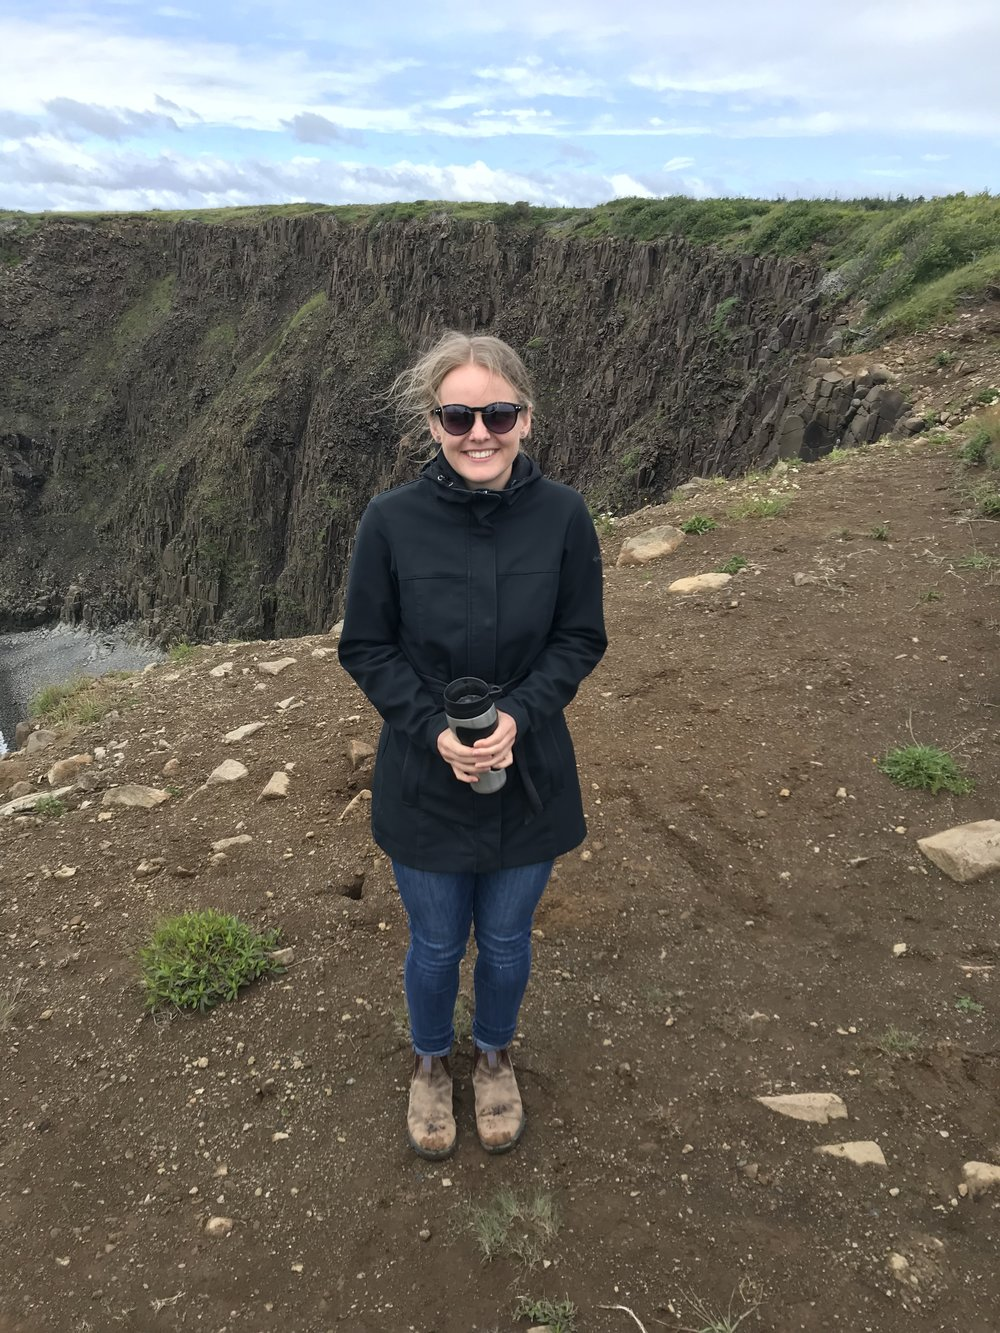 @iebrueck - This blog post is from Irene Brueckner-Irwin. Irene is a Girls Gone Water co-founder and is currently working on marine conservation issues in Atlantic Canada. She hails from Kingston, Ontario (but is currently living a nomadic life). She has a passion for connecting diverse people to the diversity of nature.